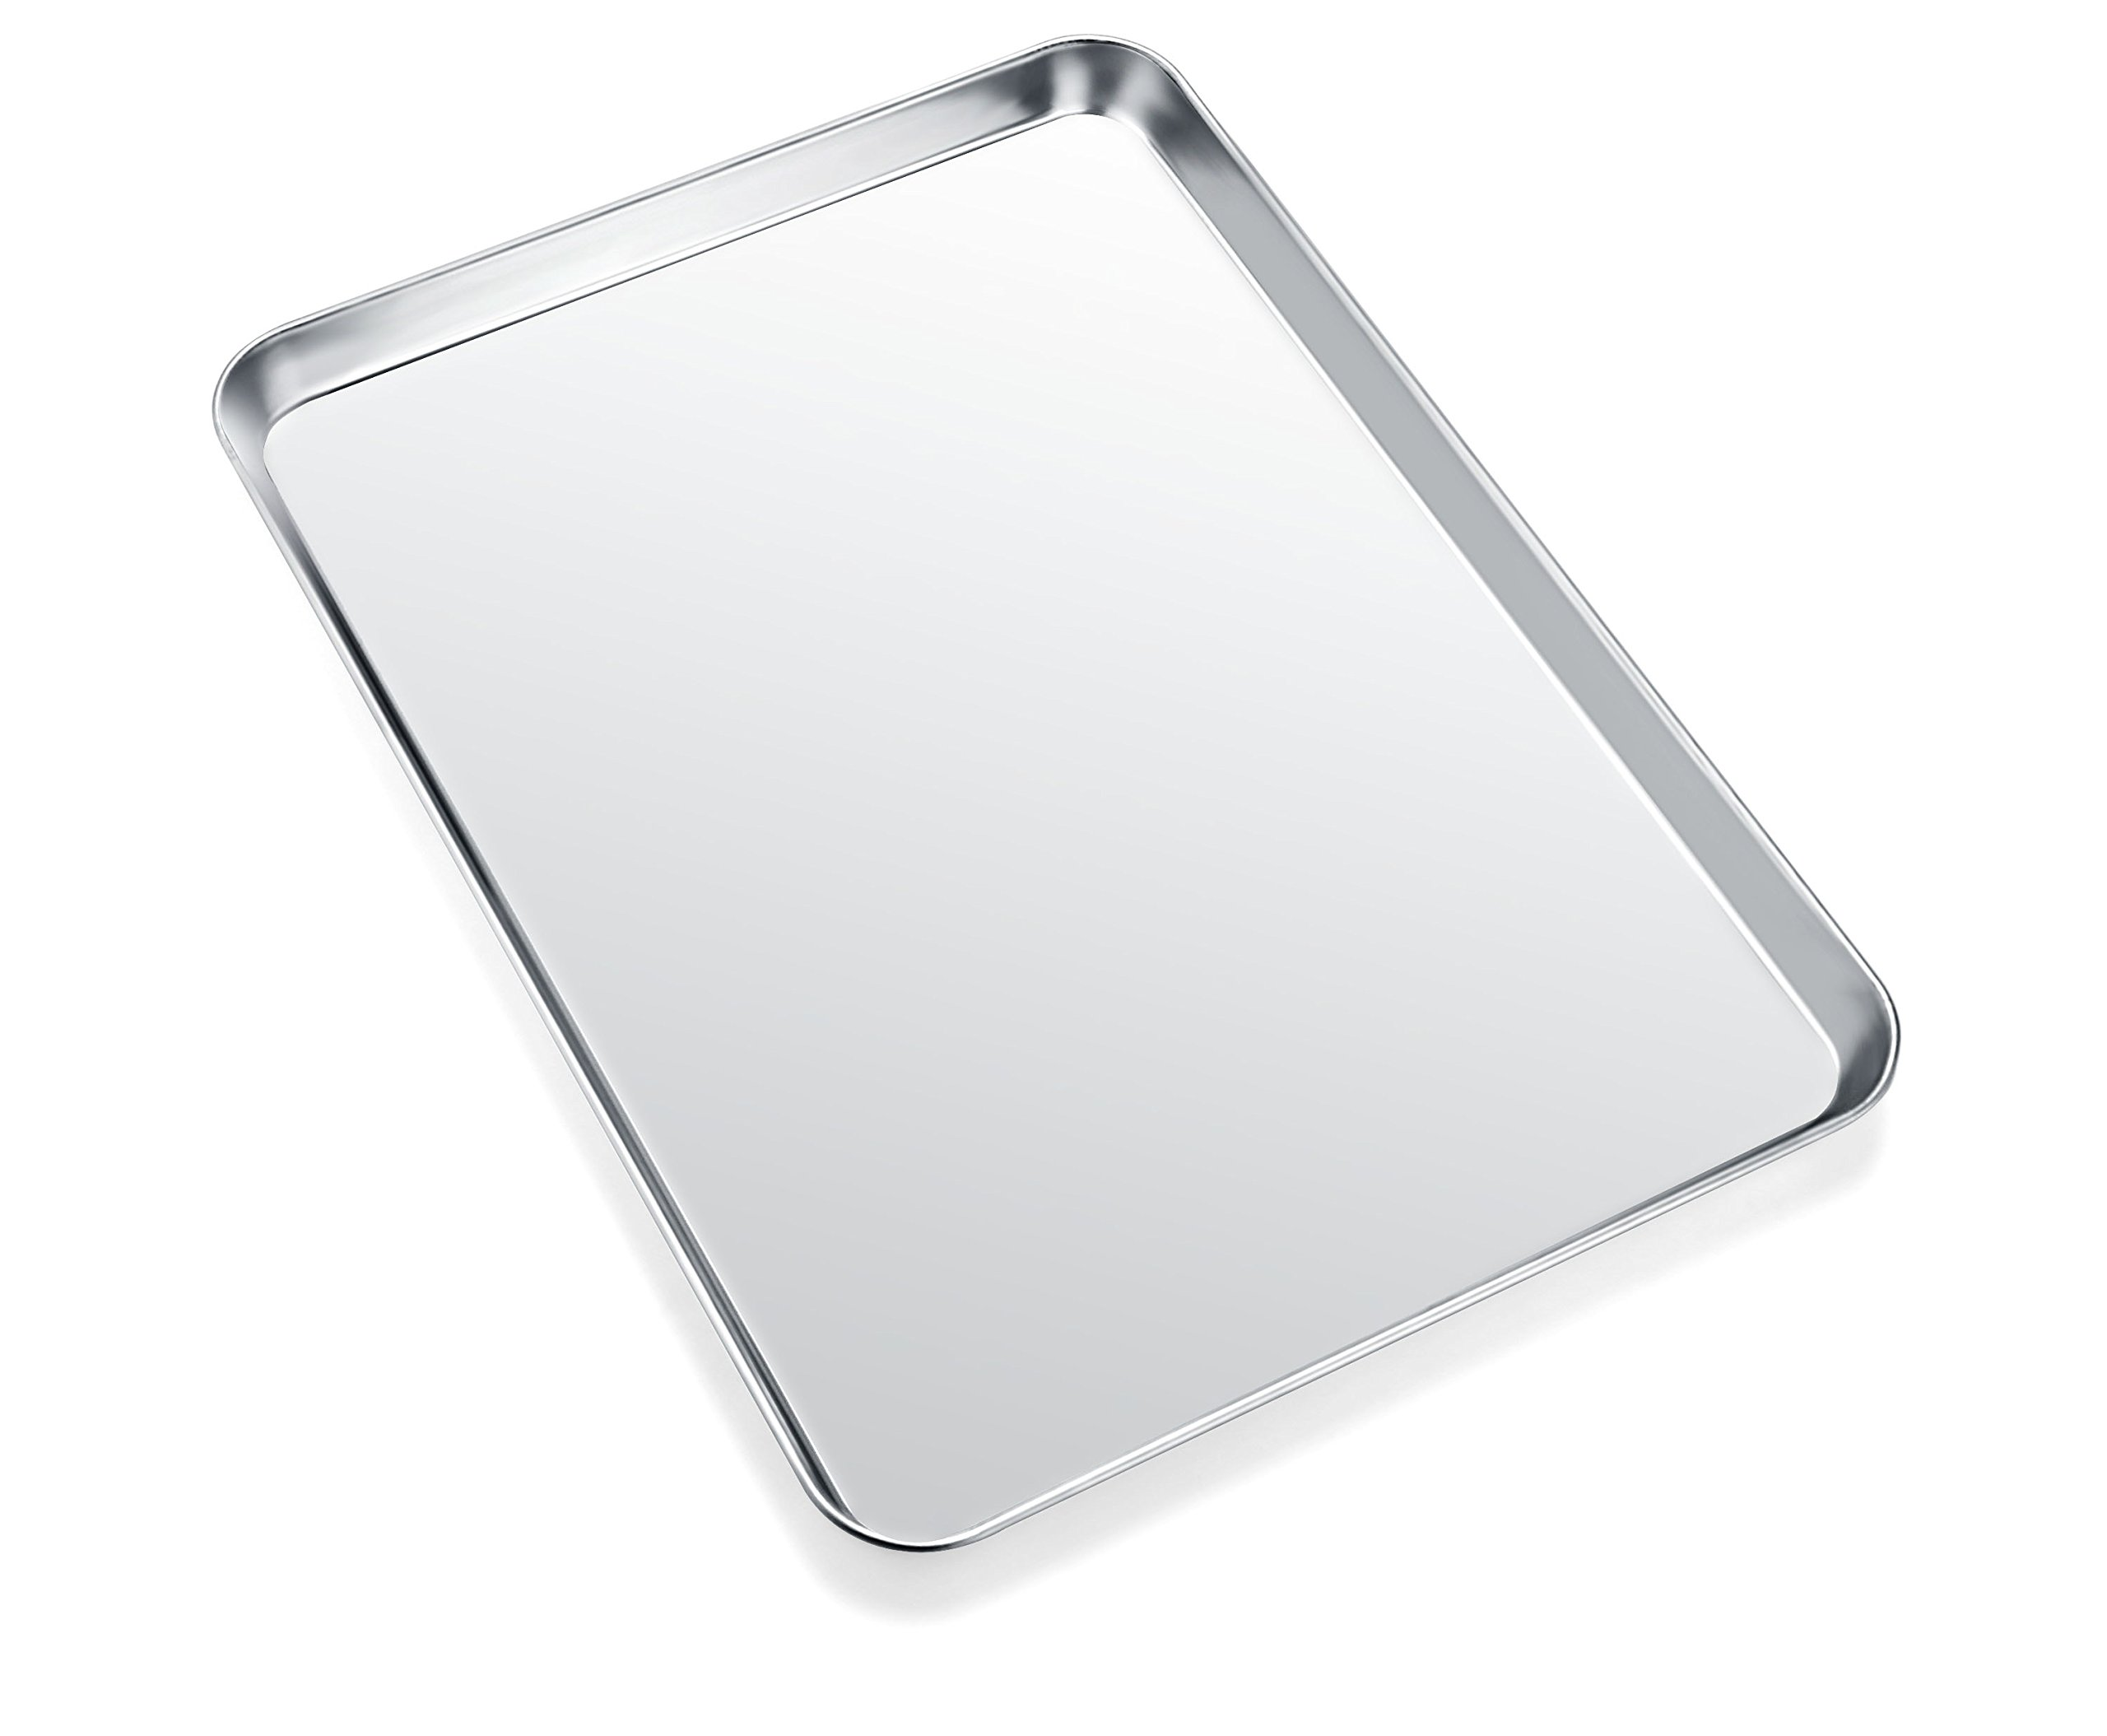 Baking Sheet, Zacfton Cookie Sheet Stainless Steel Toaster Oven Tray Pan Rectangle Size 12 x 10 x 1 inch, Non Toxic & Healthy,Superior Mirror Finish & Easy Clean, Dishwasher Safe (12inch) by Zacfton